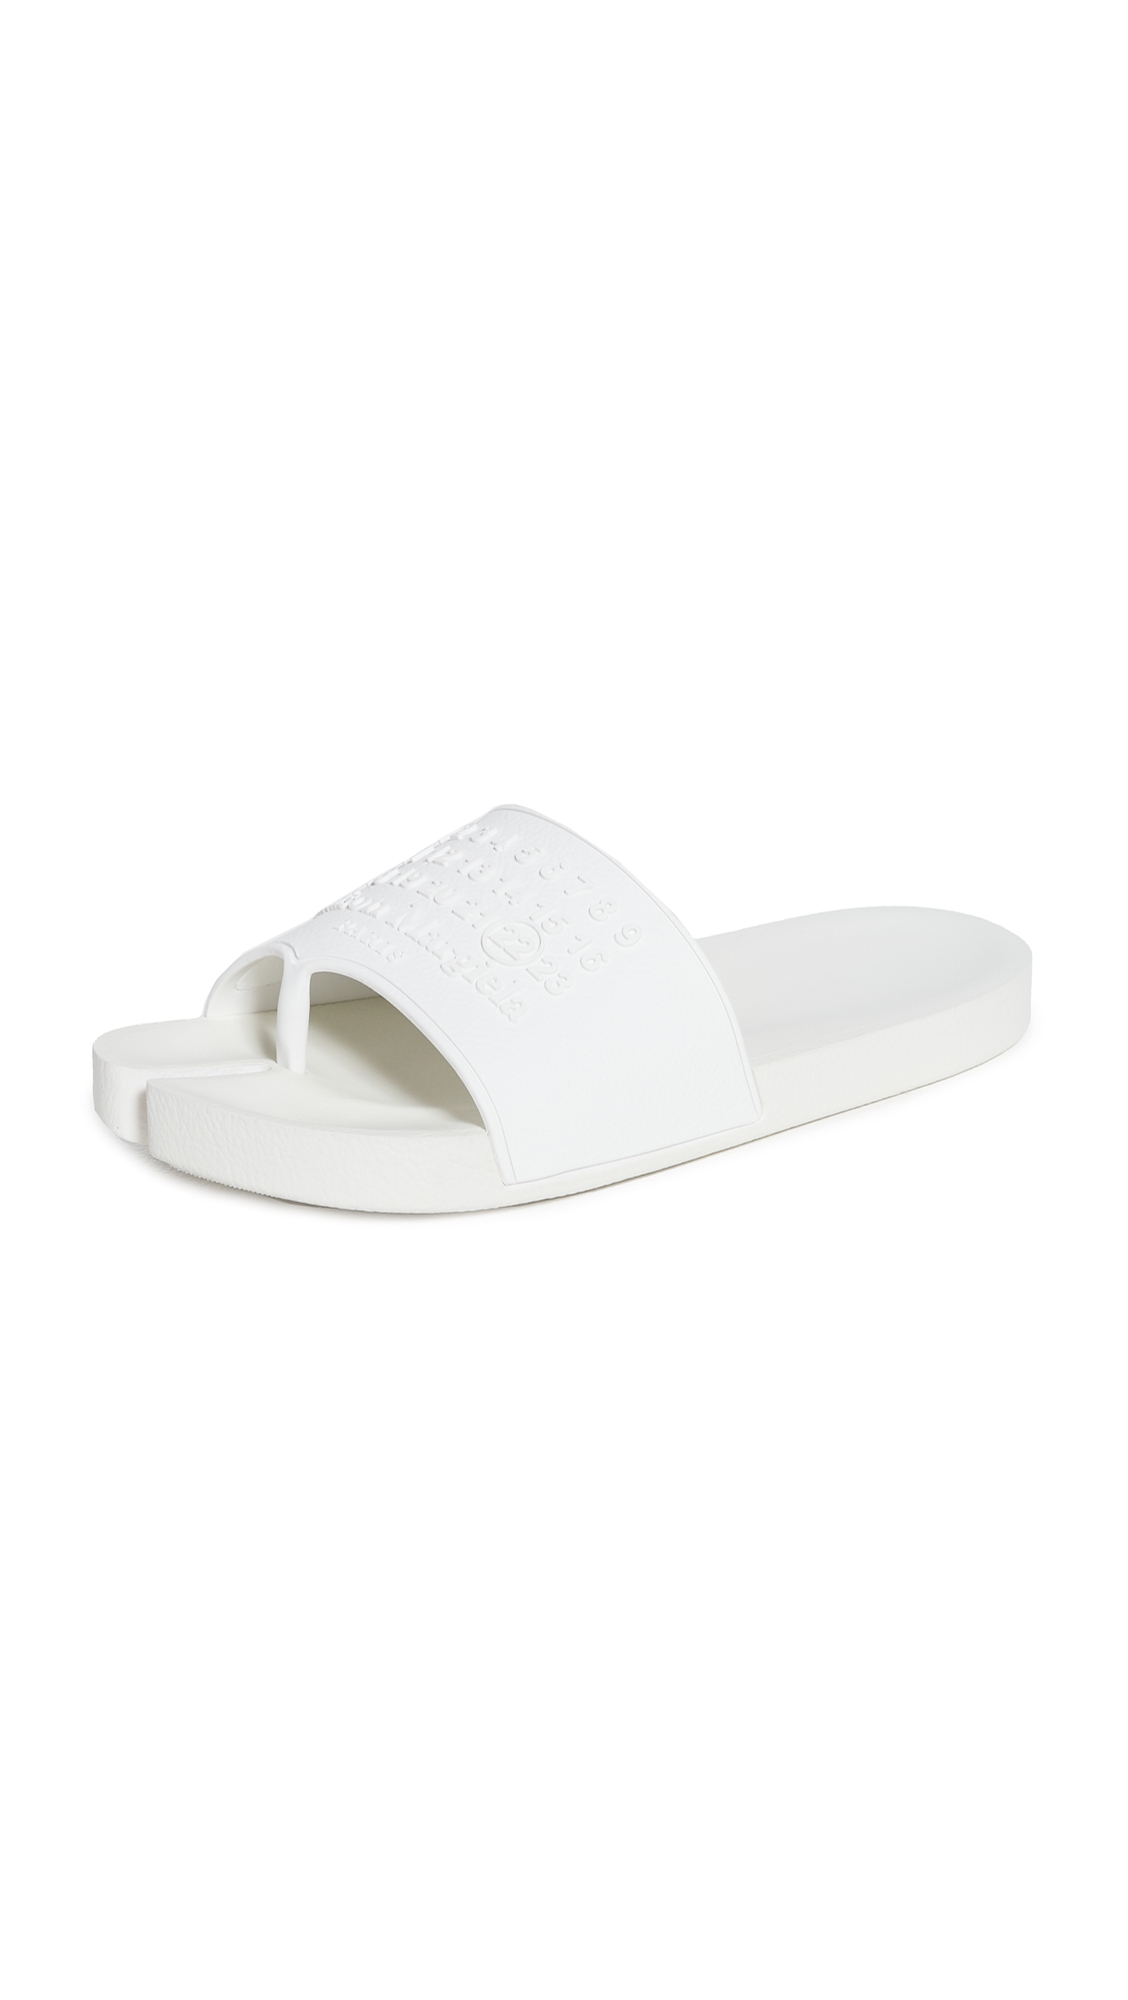 Maison Margiela TABI POOL SLIDES